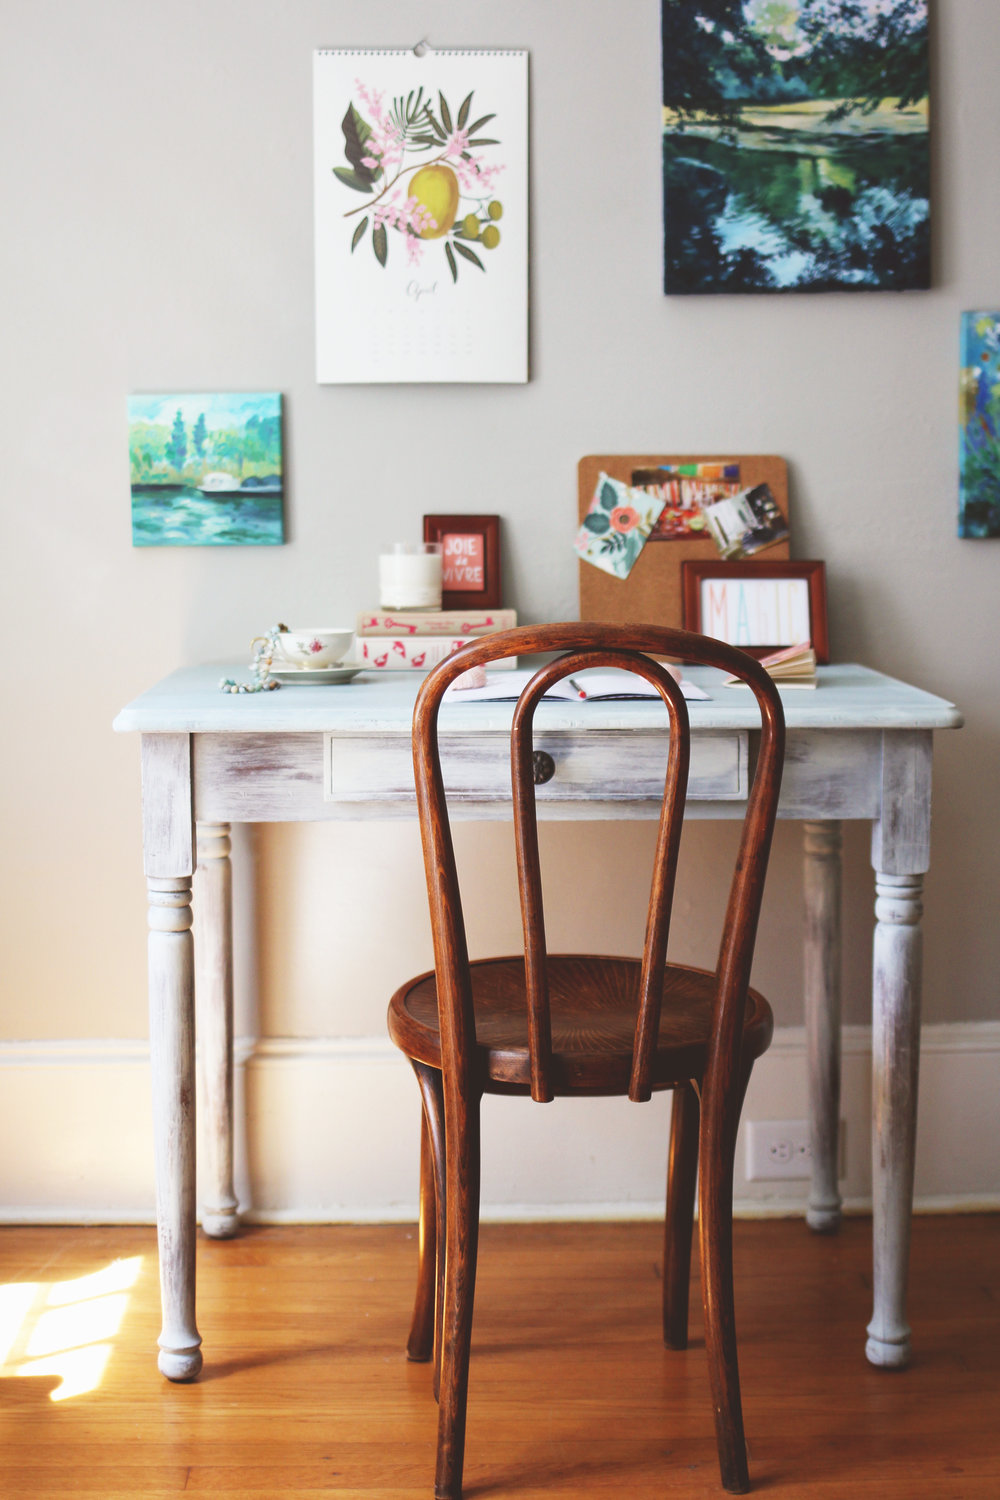 Painted Furniture A Simpler Design A Hub For All Things